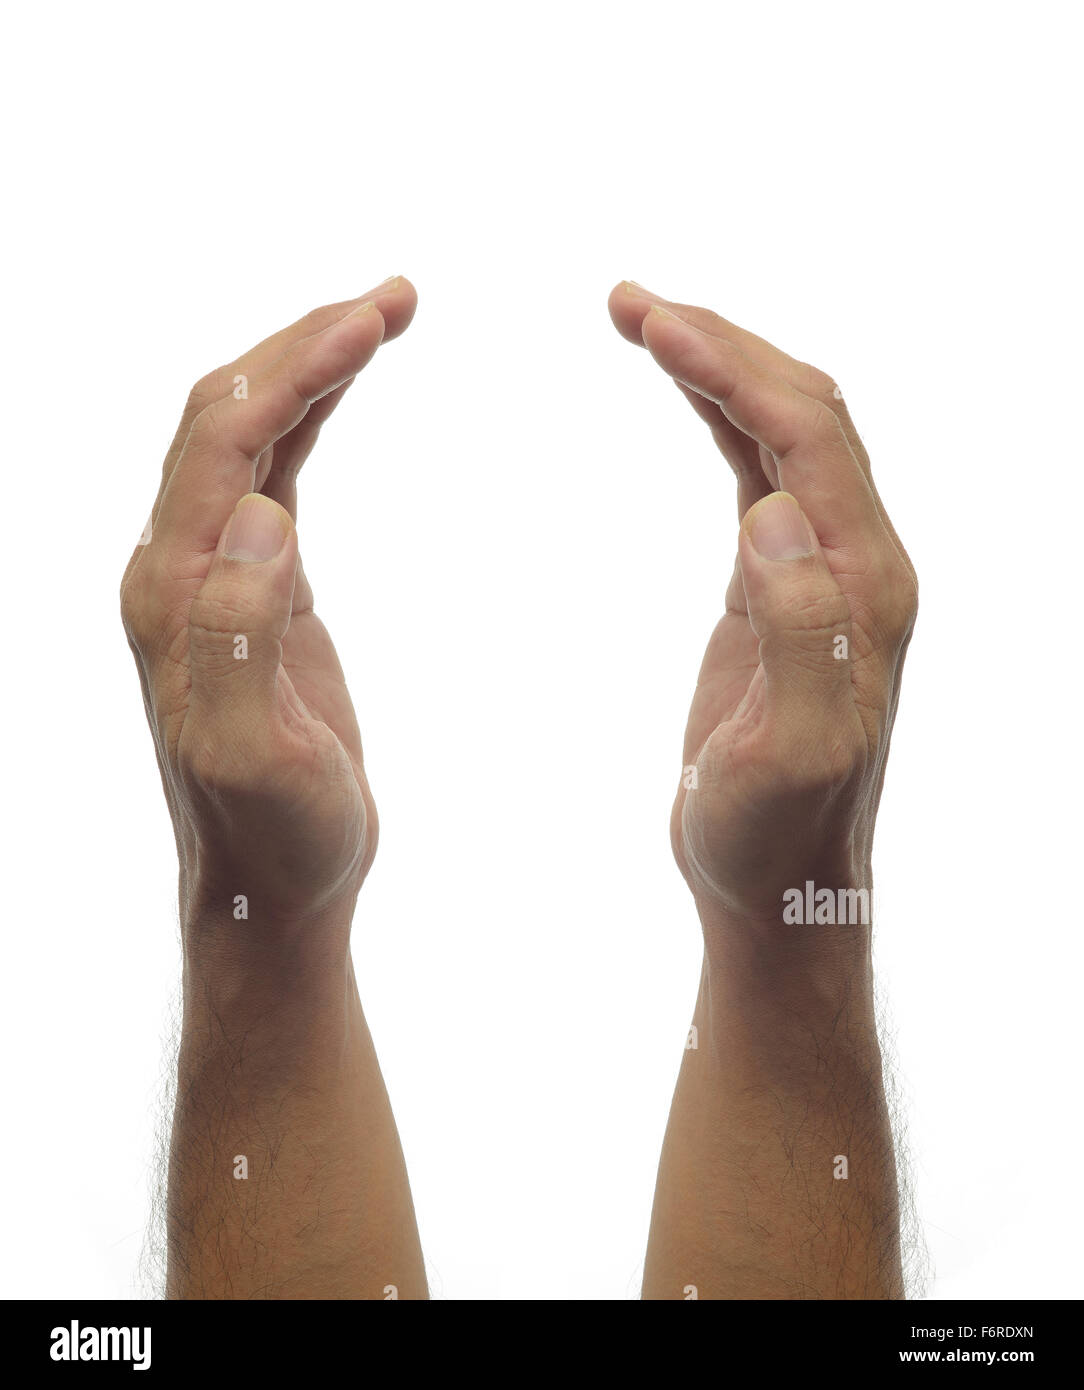 Human hands -protecting gesture on white background - Stock Image